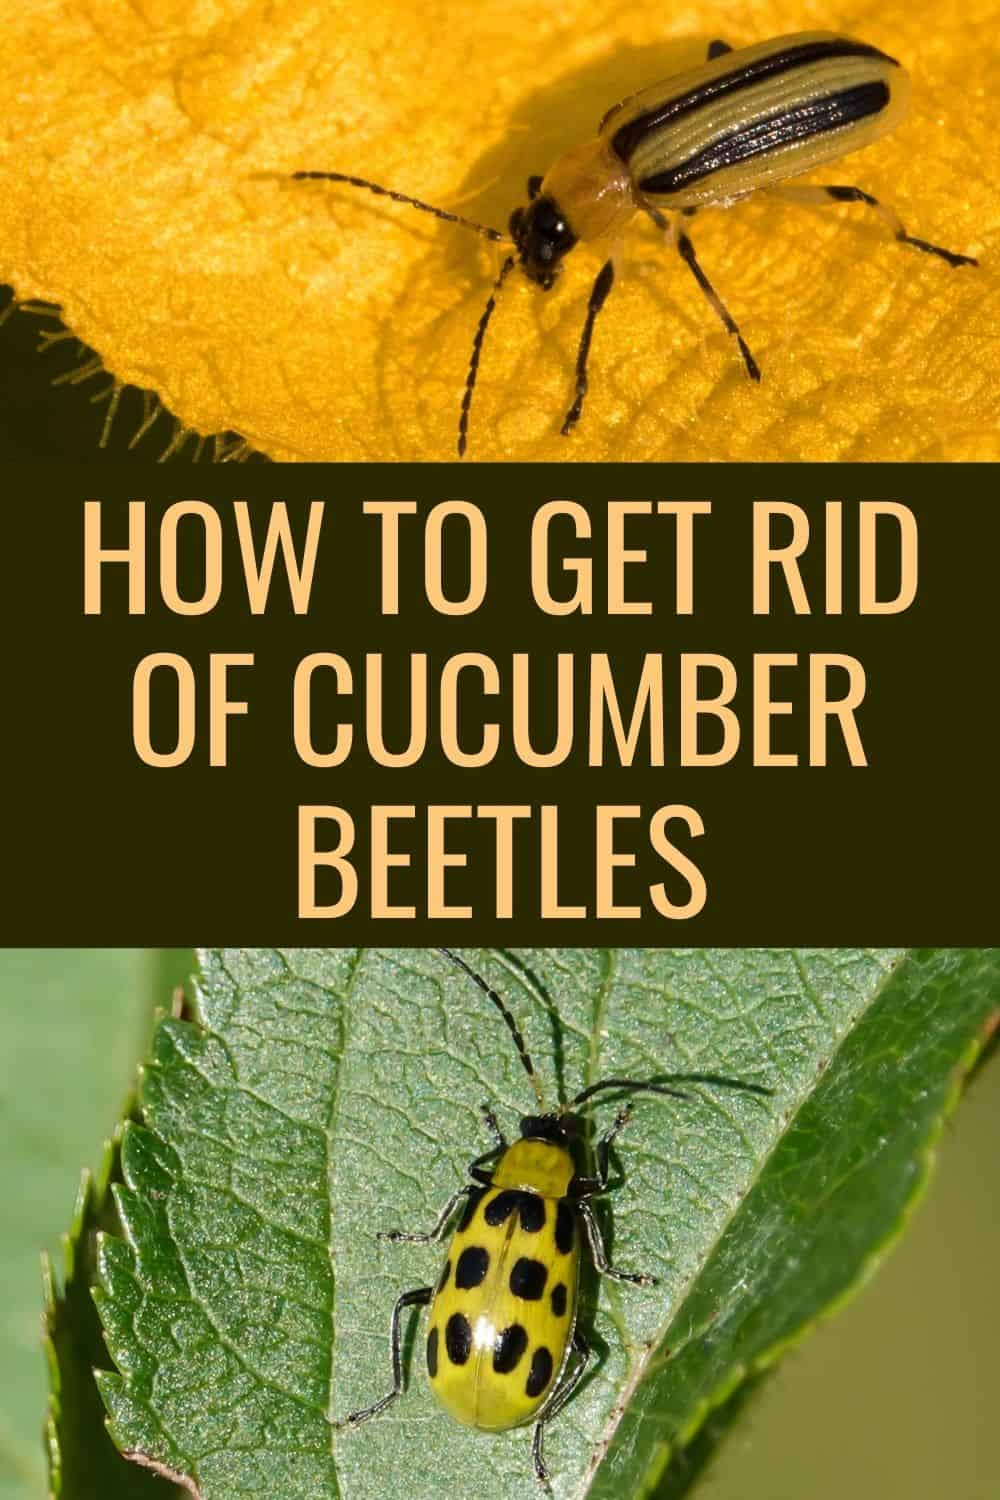 How to get rid of cucumbwr beetles